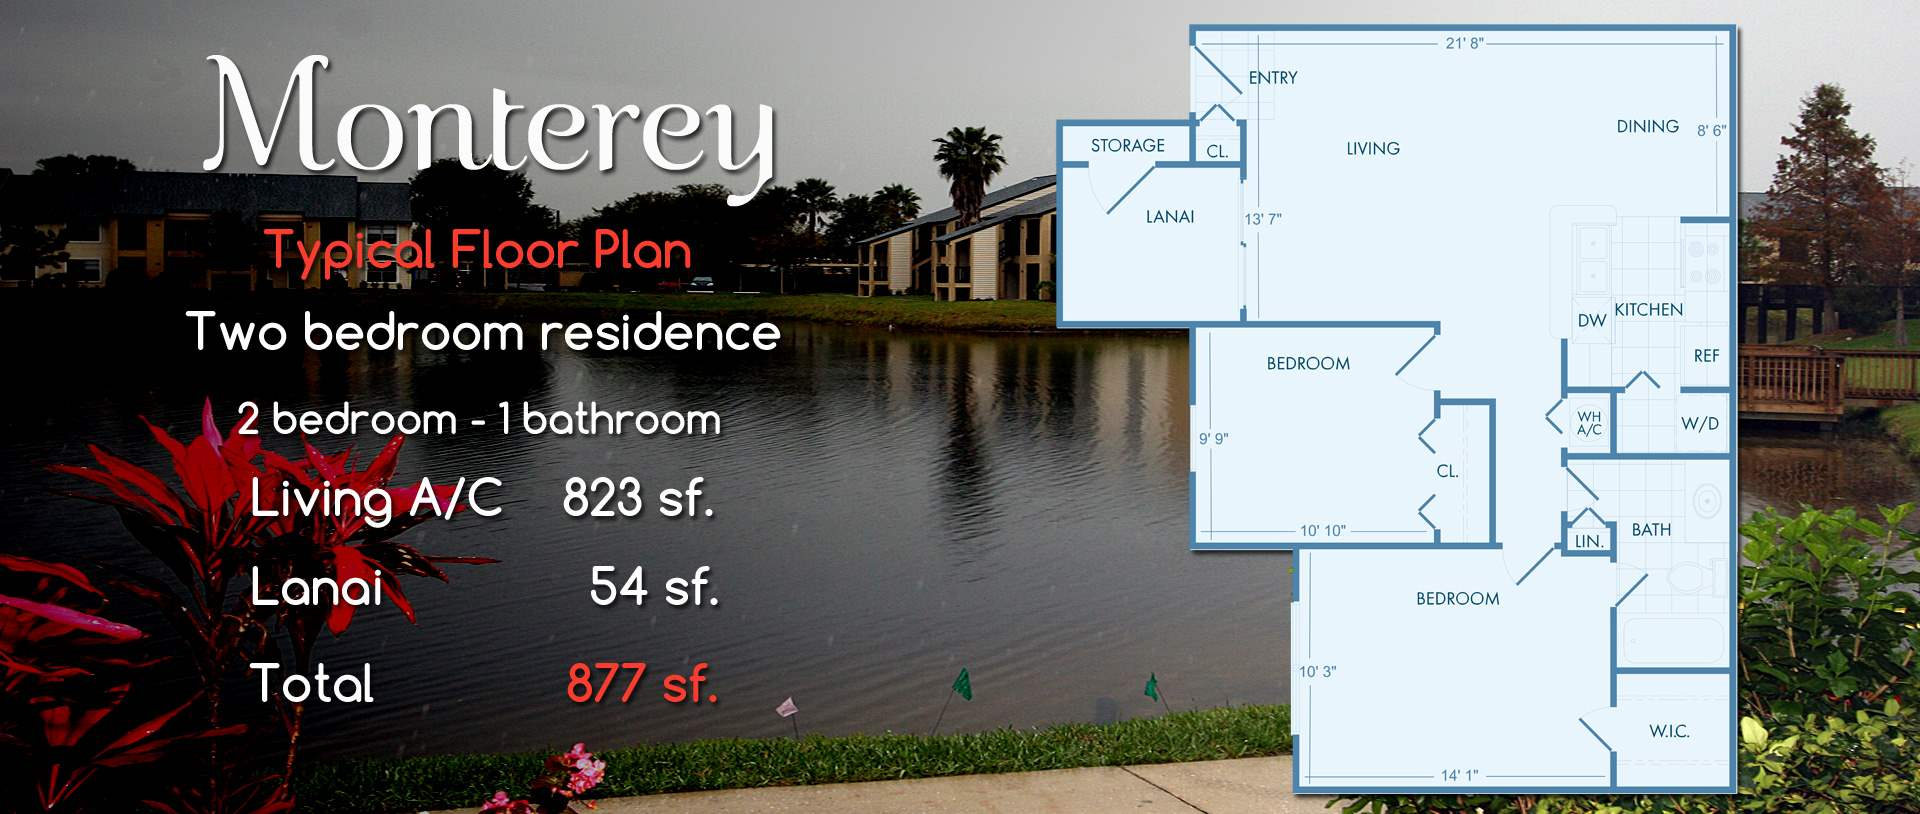 Monterey | Two Bedroom Floor Plan